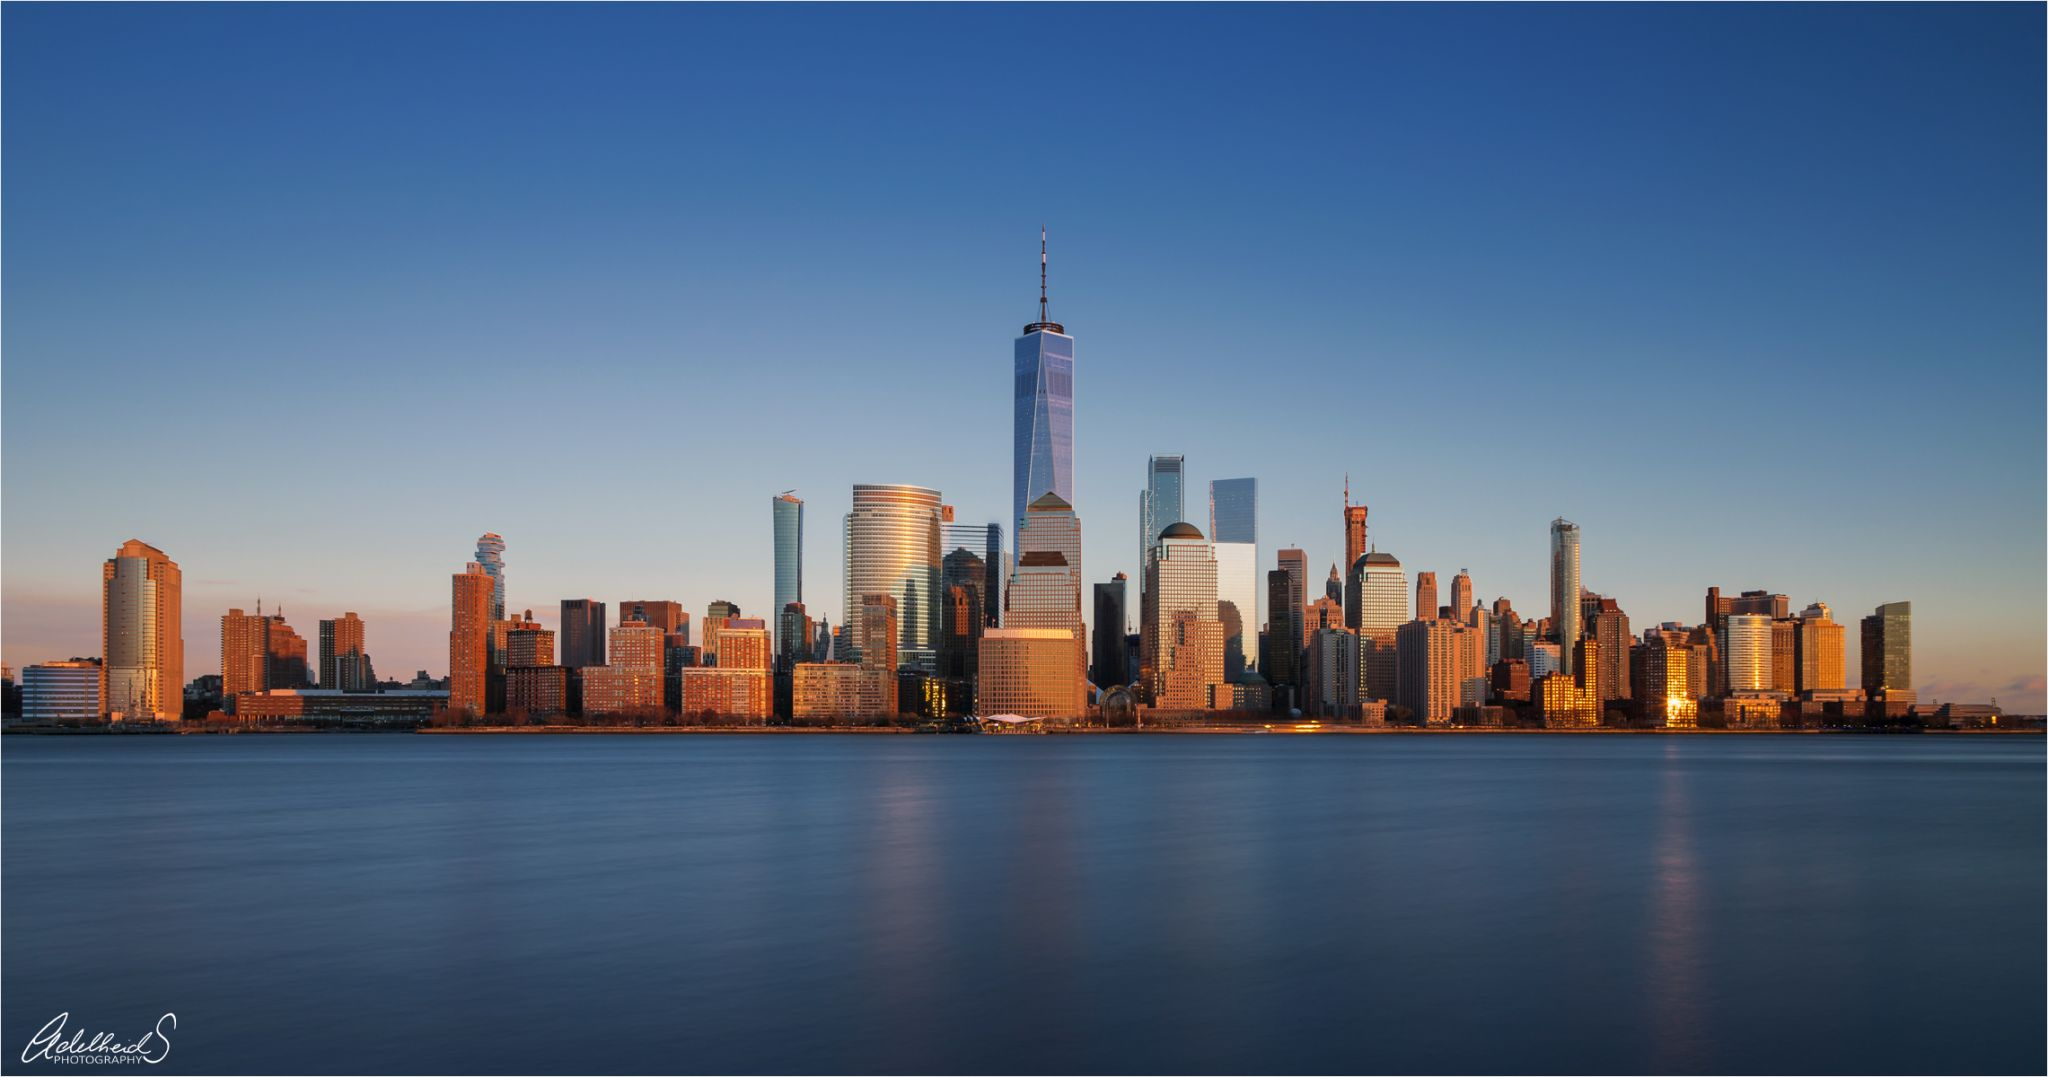 New York from Jersey, USA